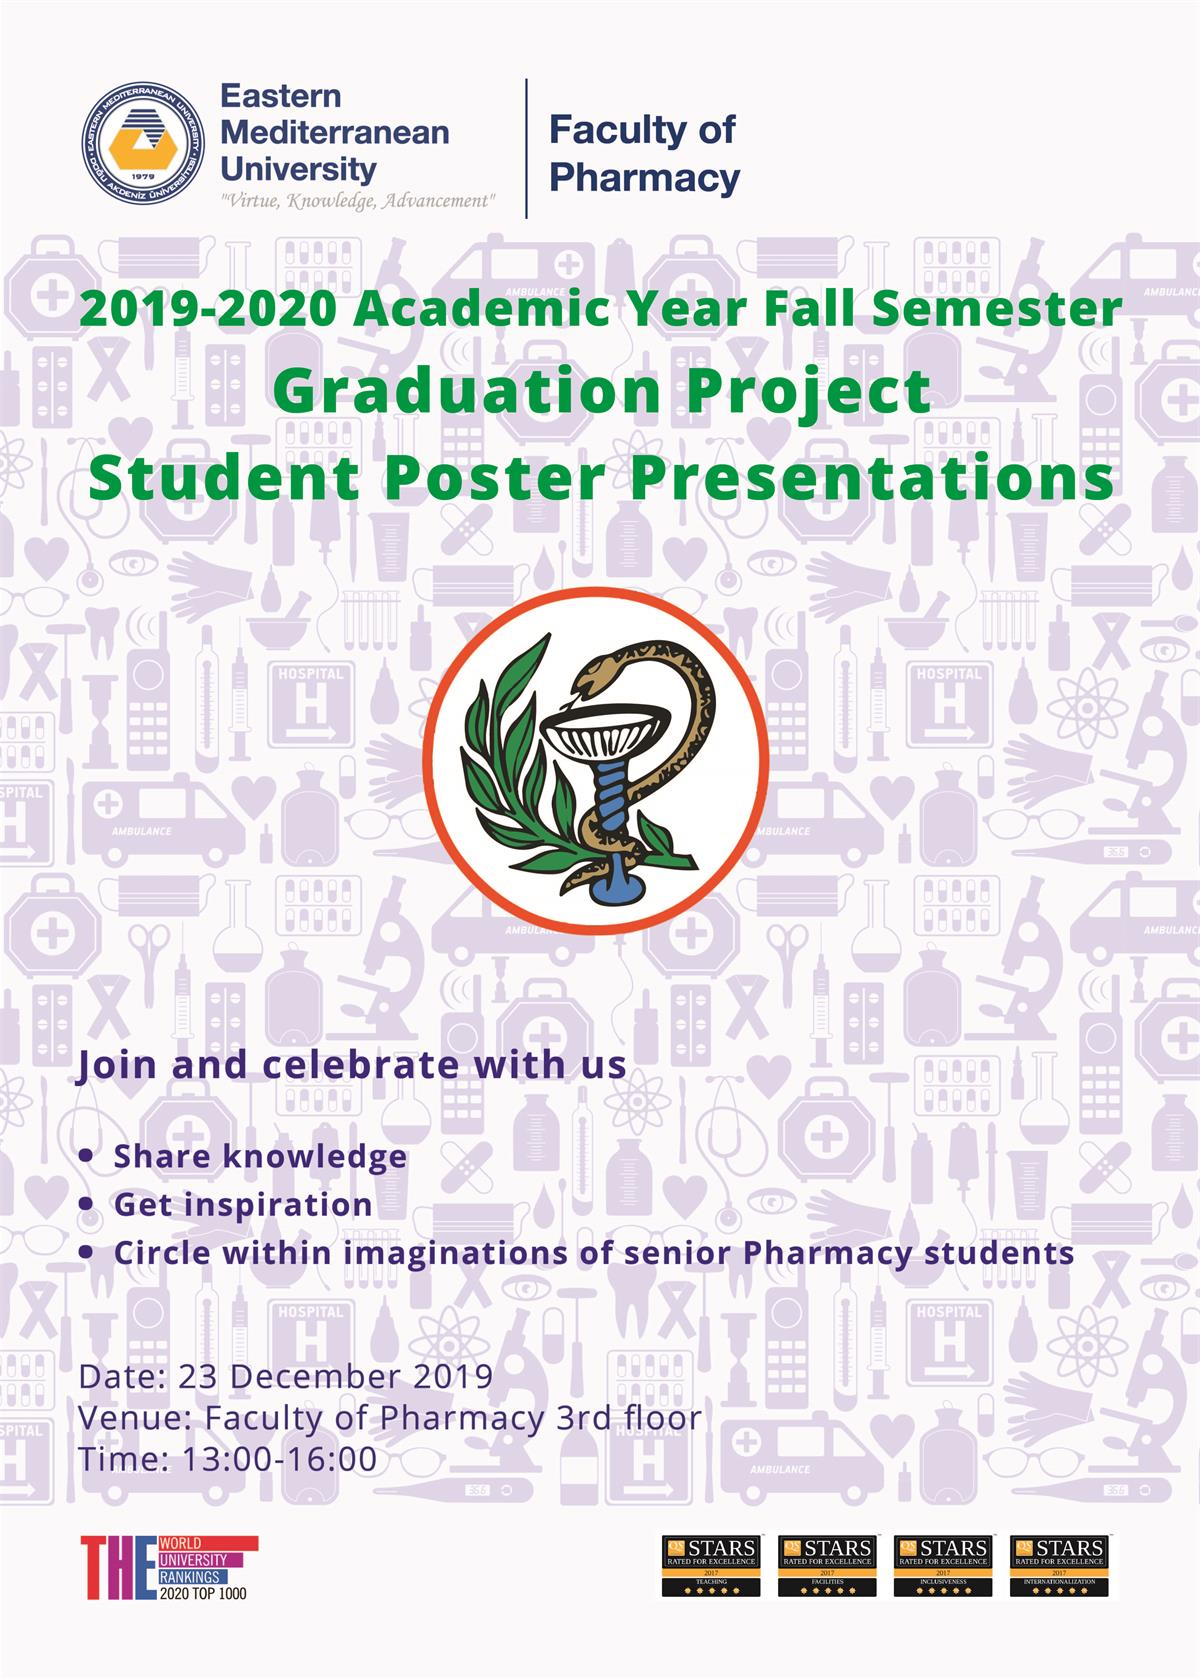 2019 - 2020 FALL SEMESTER Graduation Project - Student Poster Presentations